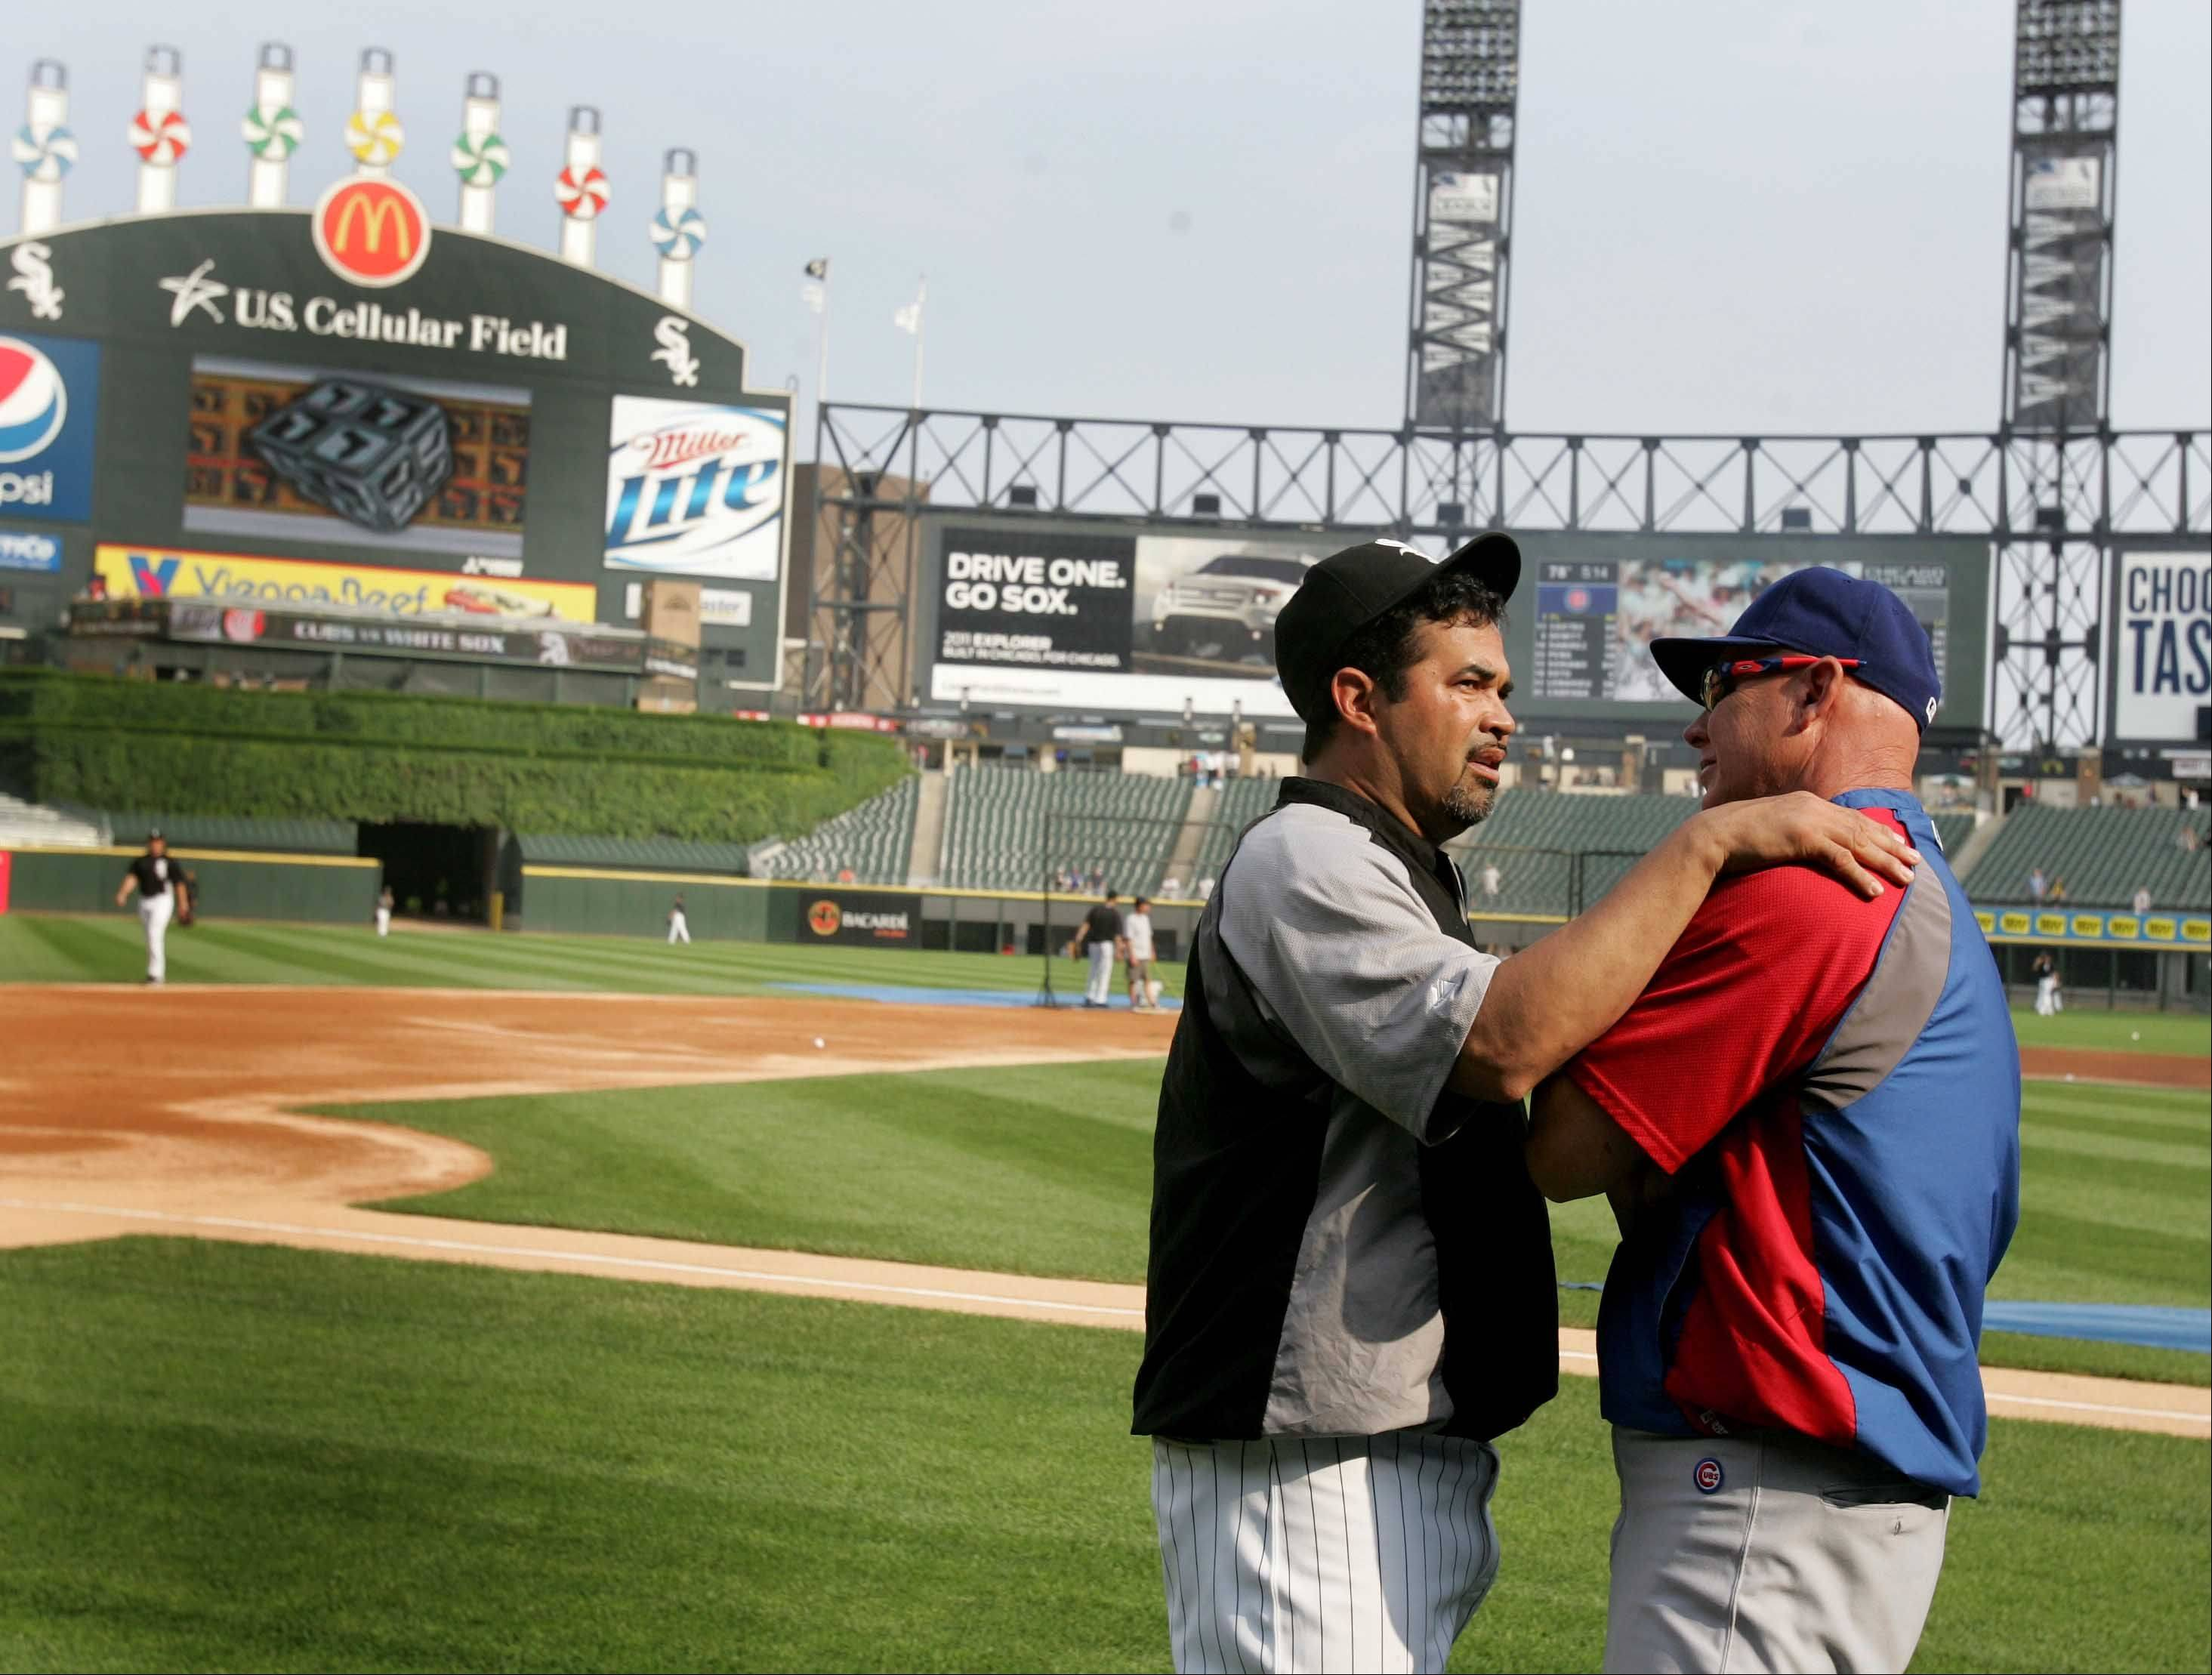 Chicago Cubs manger Mike Quade, right and Chicago White Sox manager Ozzie Guillen chat on the field before the Crosstown Classic Monday at U.S. Cellular Field.